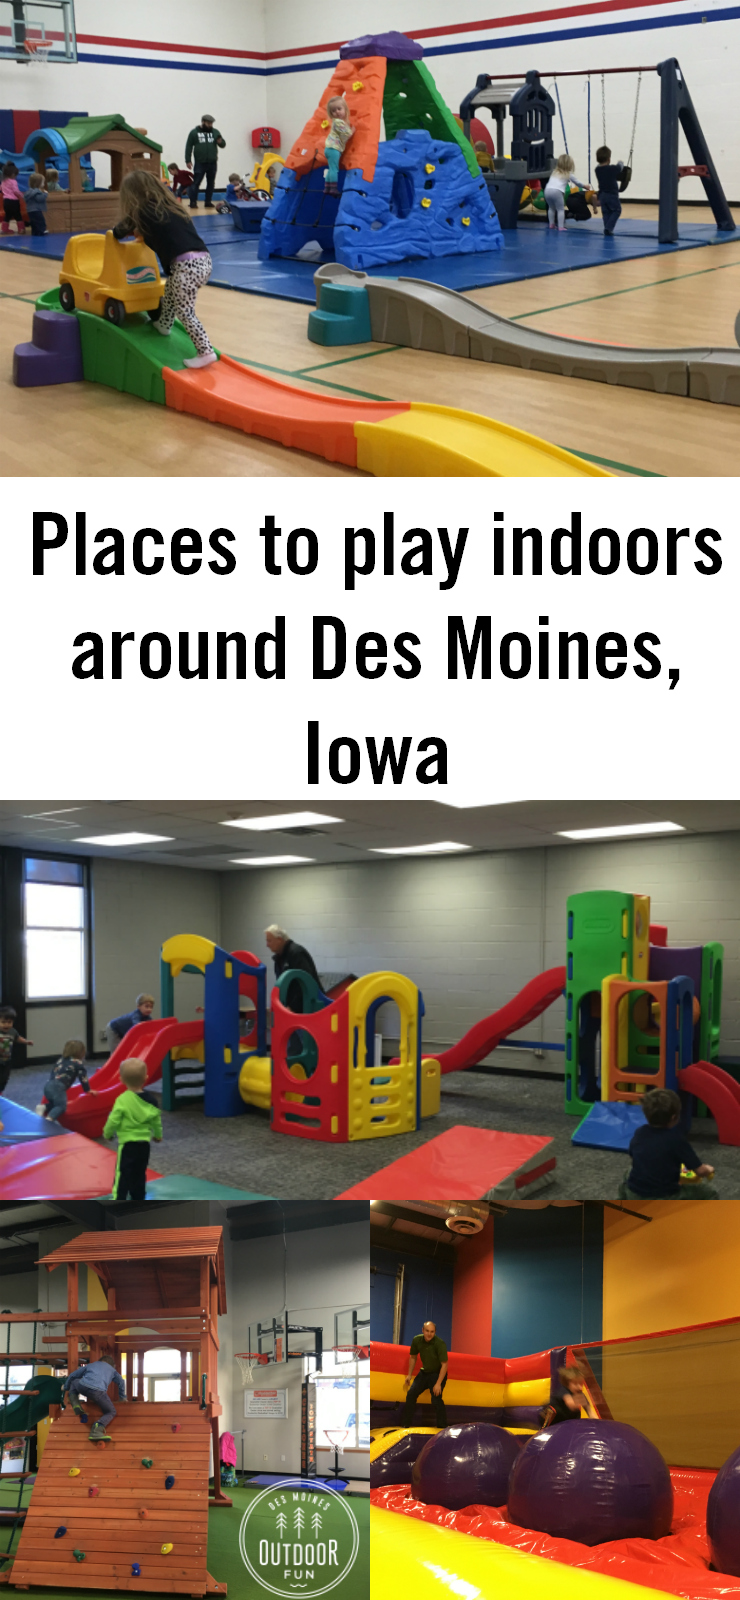 If it's so cold you can't get all your kids' energy out at the playground, check out all these ideas for burning off steam. This is a huge list and map of all the indoor play gyms, indoor playgrounds, trampoline parks, bounce houses, gymnastics open gyms, mall play gyms, bowling lanes, indoor ice skating, roller skating rinks, laser tag, indoor golf, and rock climbing in Des Moines, Iowa and around central Iowa.